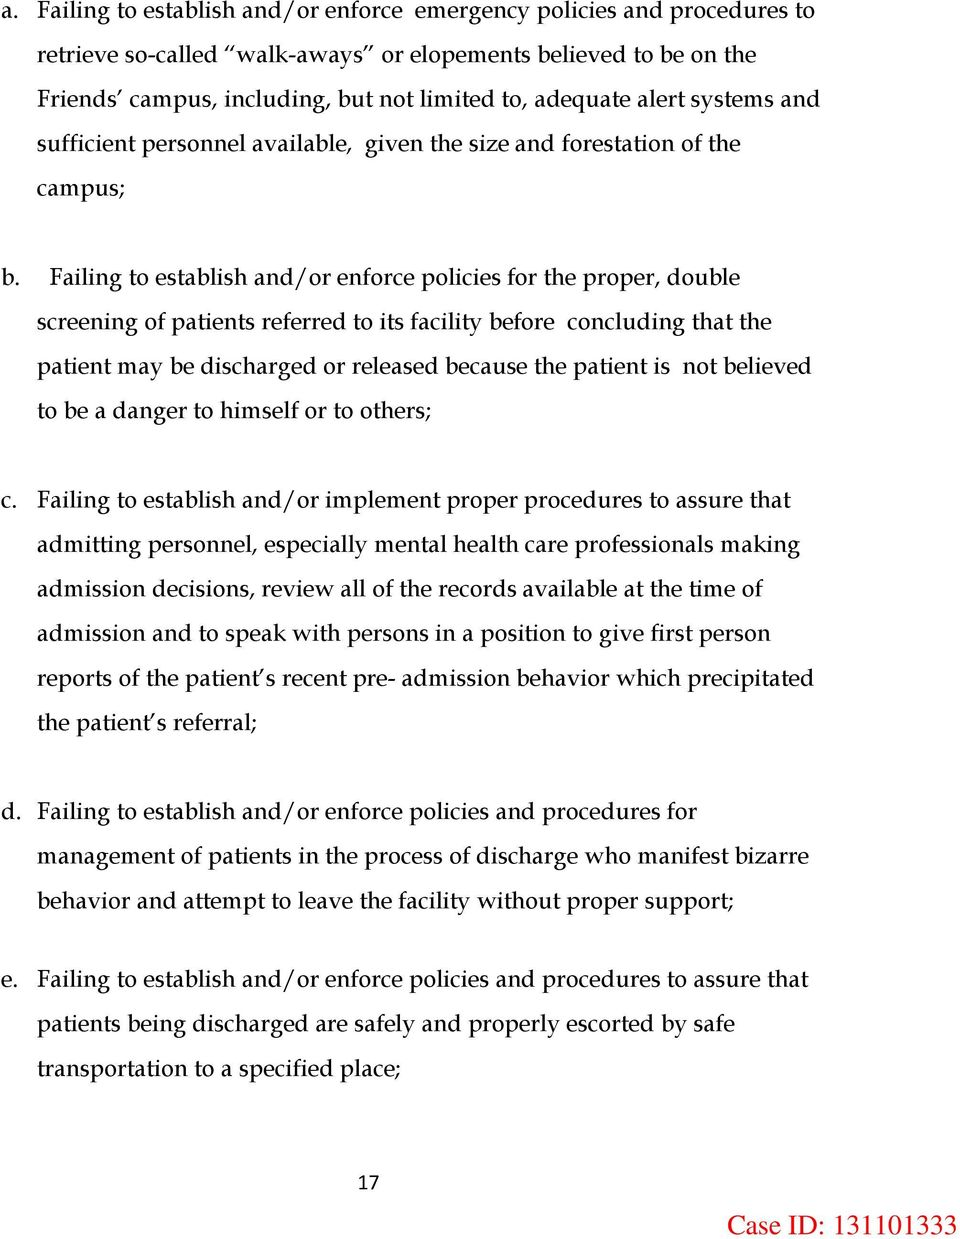 Failing to establish and/or enforce policies for the proper, double screening of patients referred to its facility before concluding that the patient may be discharged or released because the patient